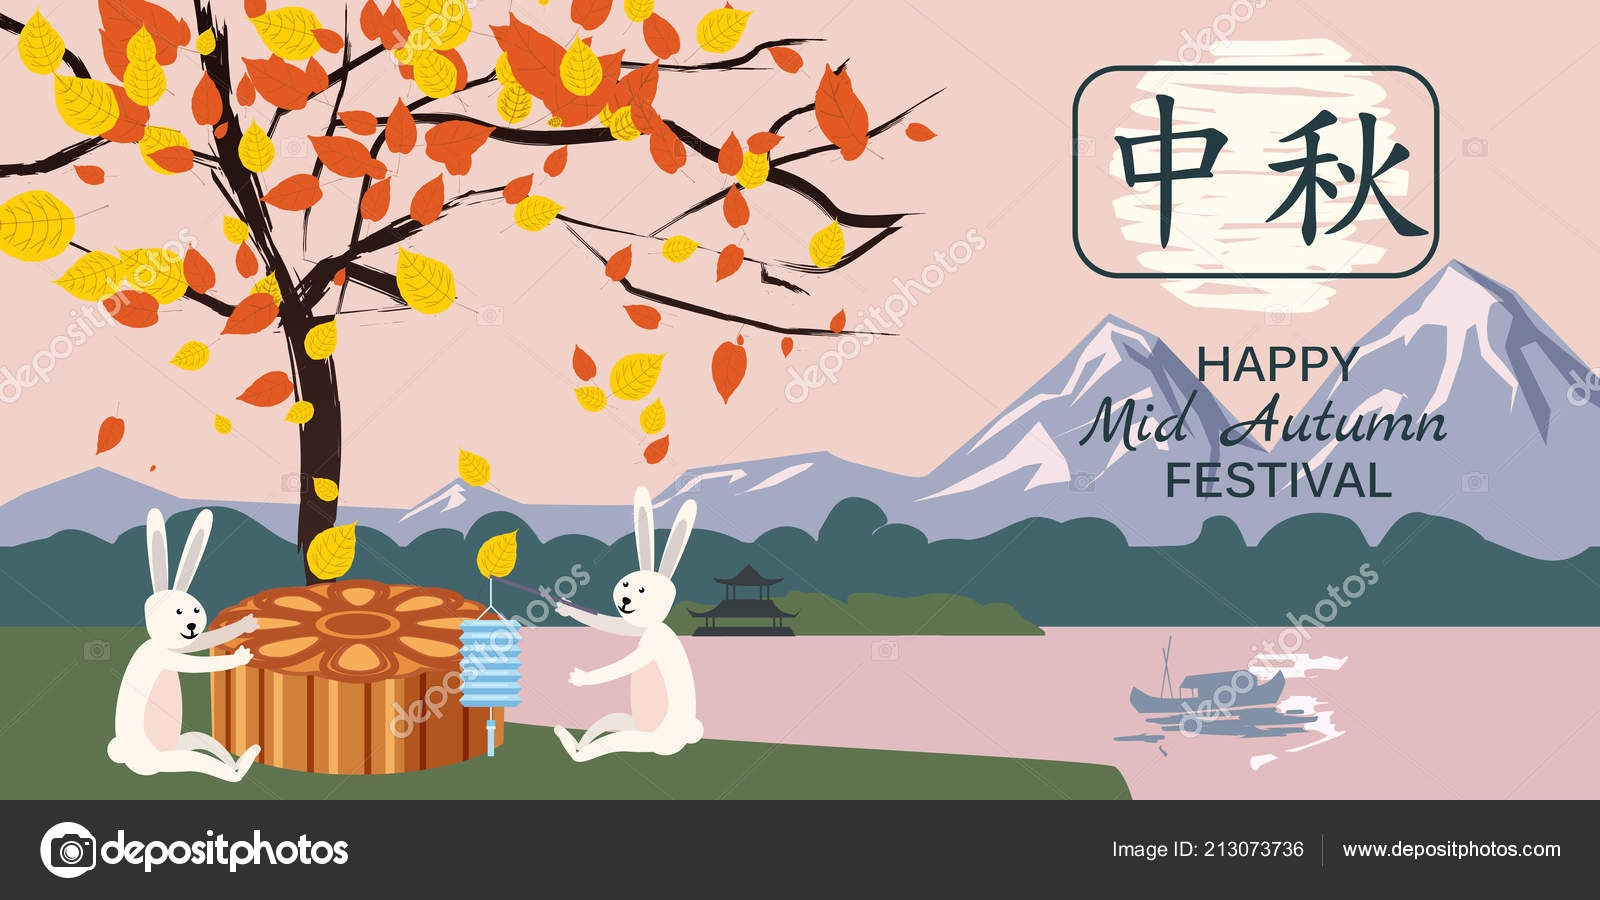 Mid Autumn Festival Moon Cake Festival Rabbits Rejoice And Play